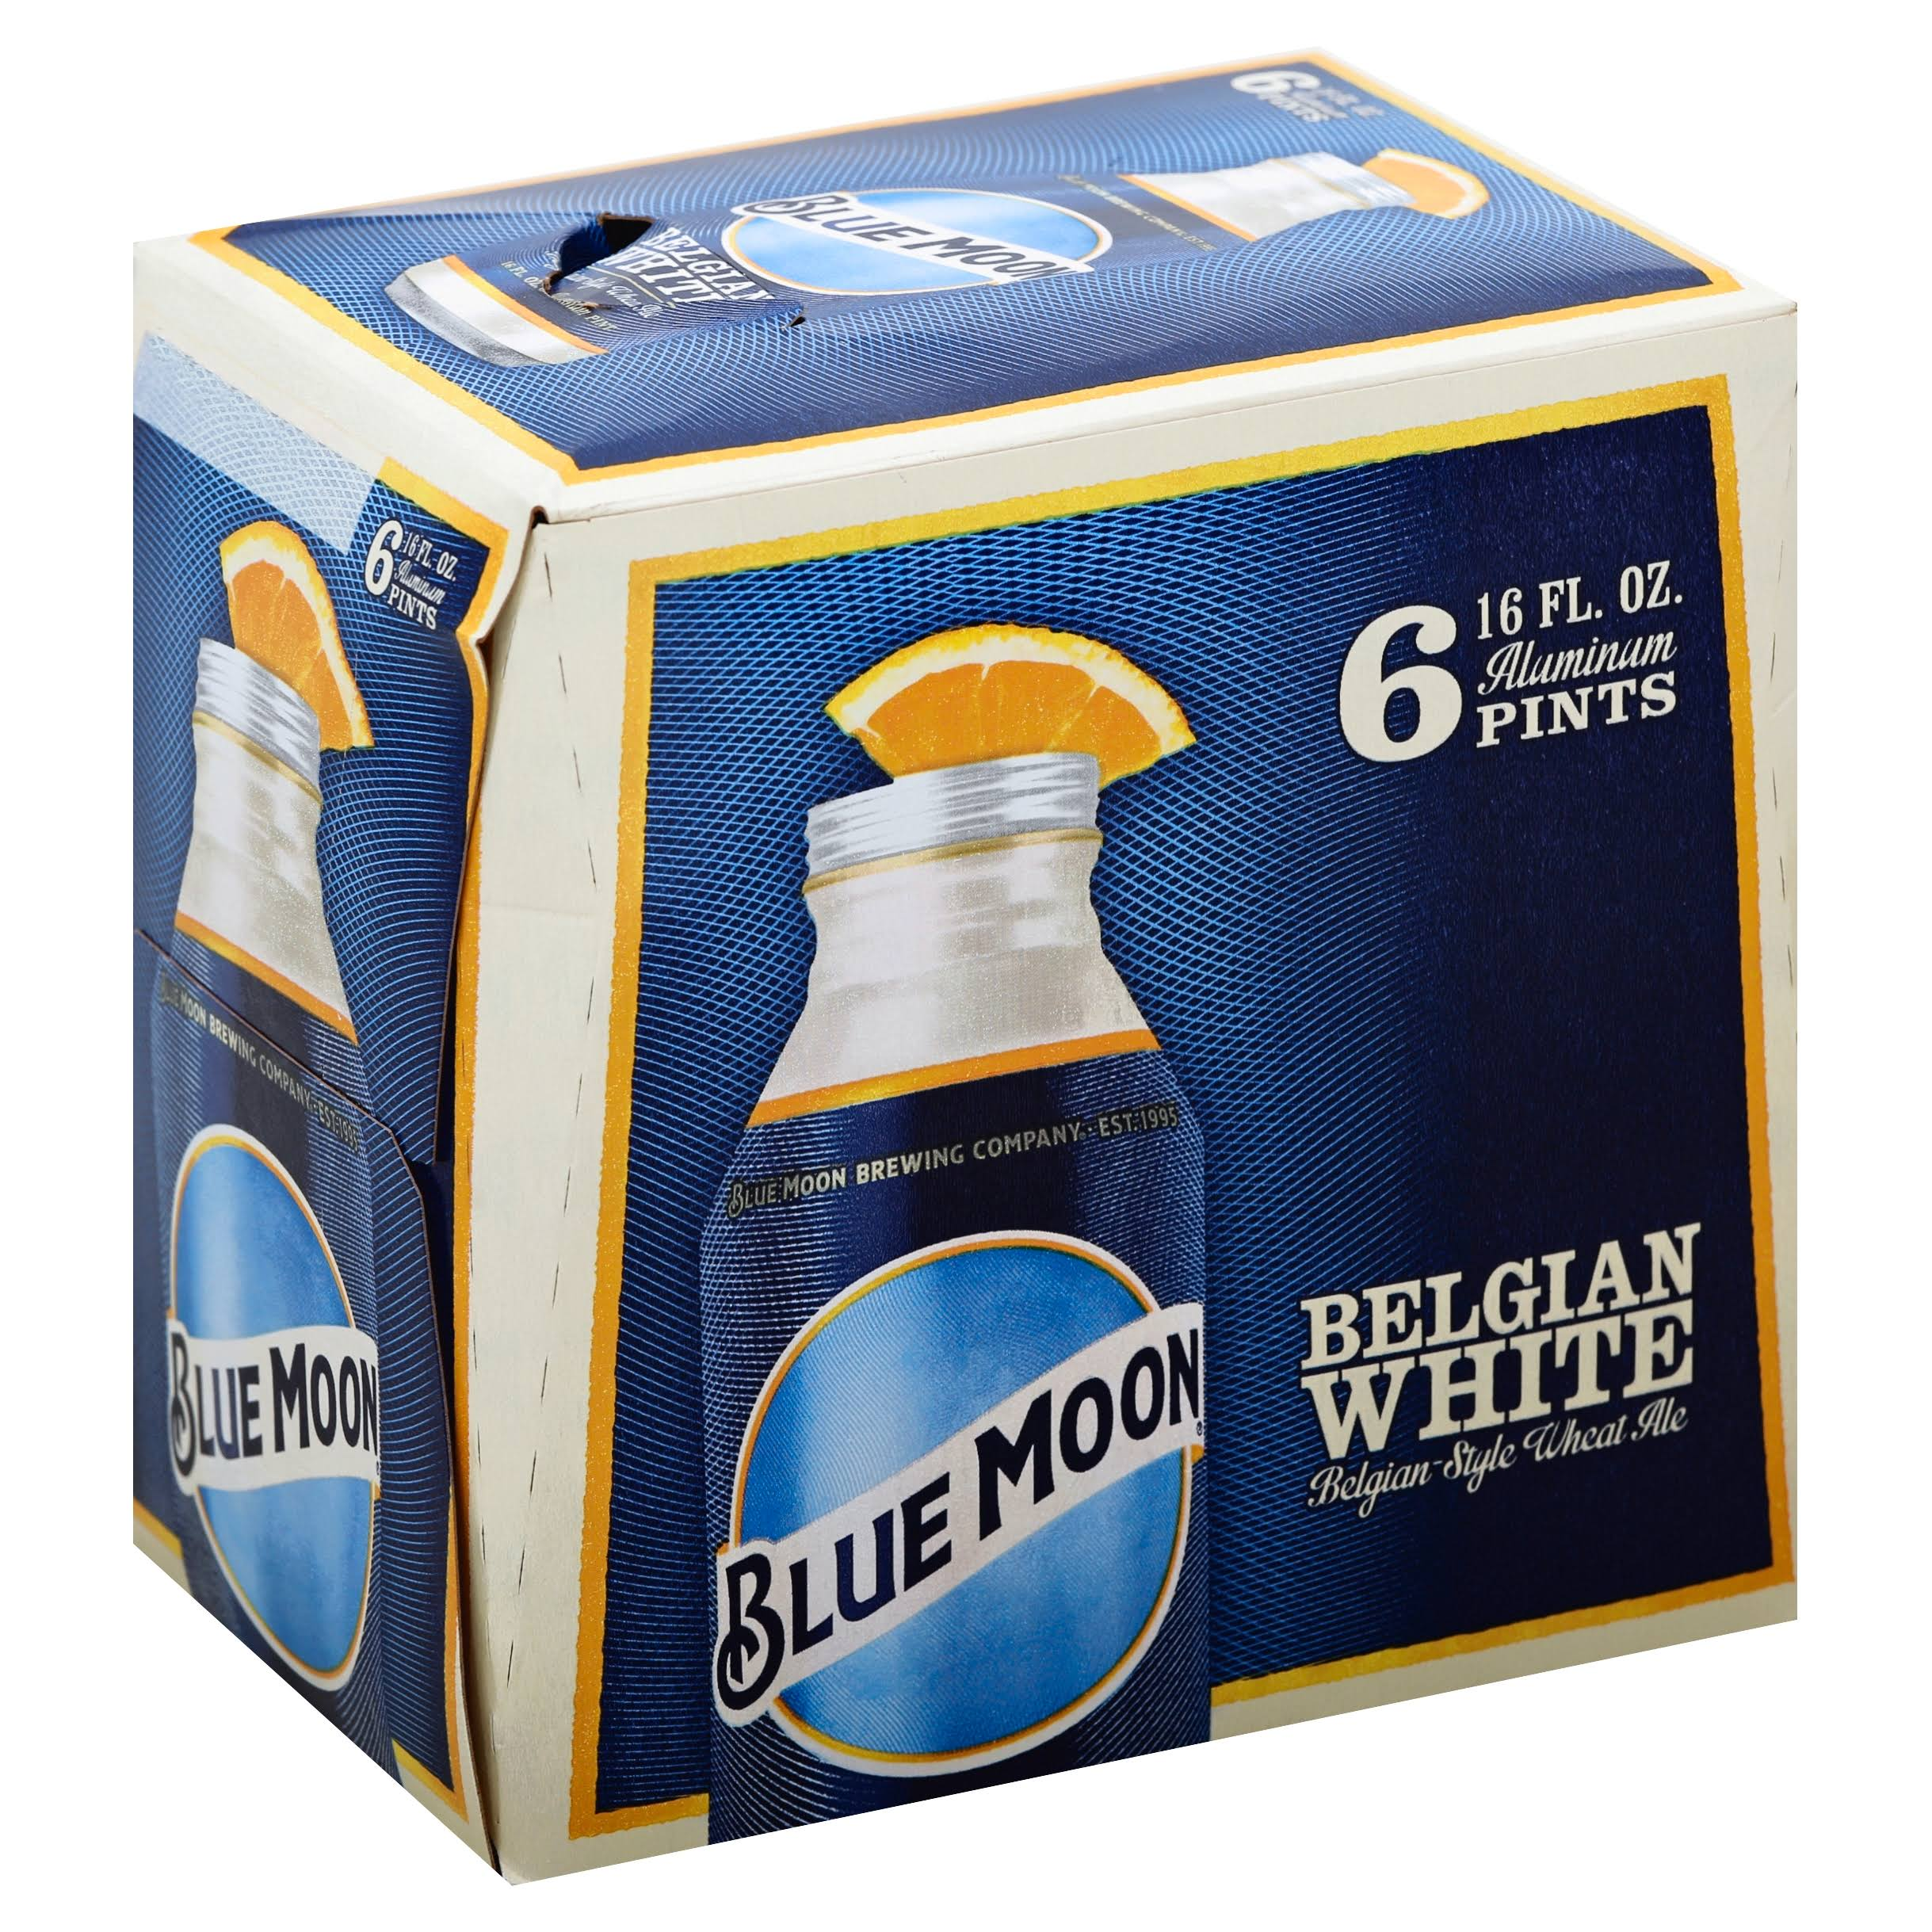 Blue Moon Beer, Belgian Wheat Ale, Belgian White - 6 pack, 16 fl oz aluminum pints